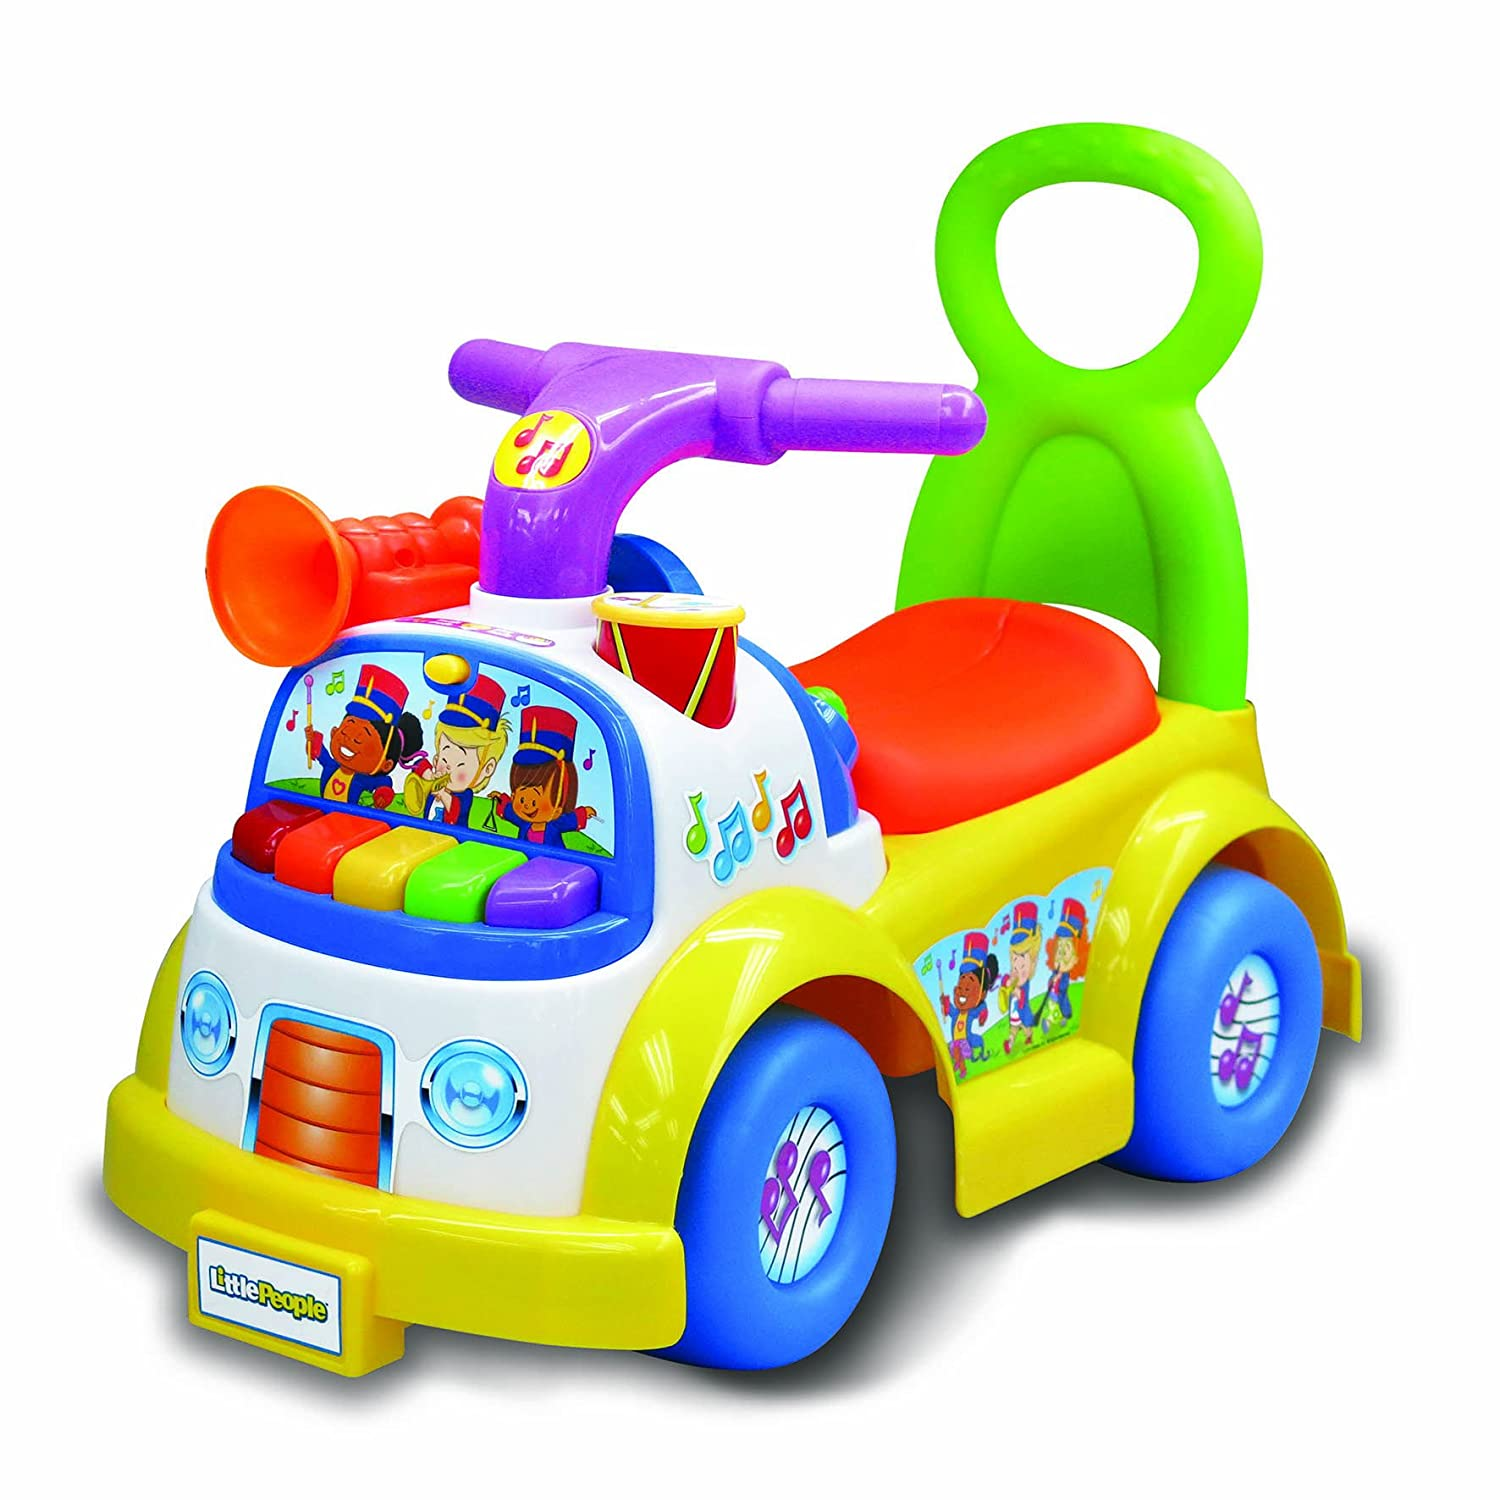 Toys For 1 Year Old : Cool toys for year old boys birthday christmas